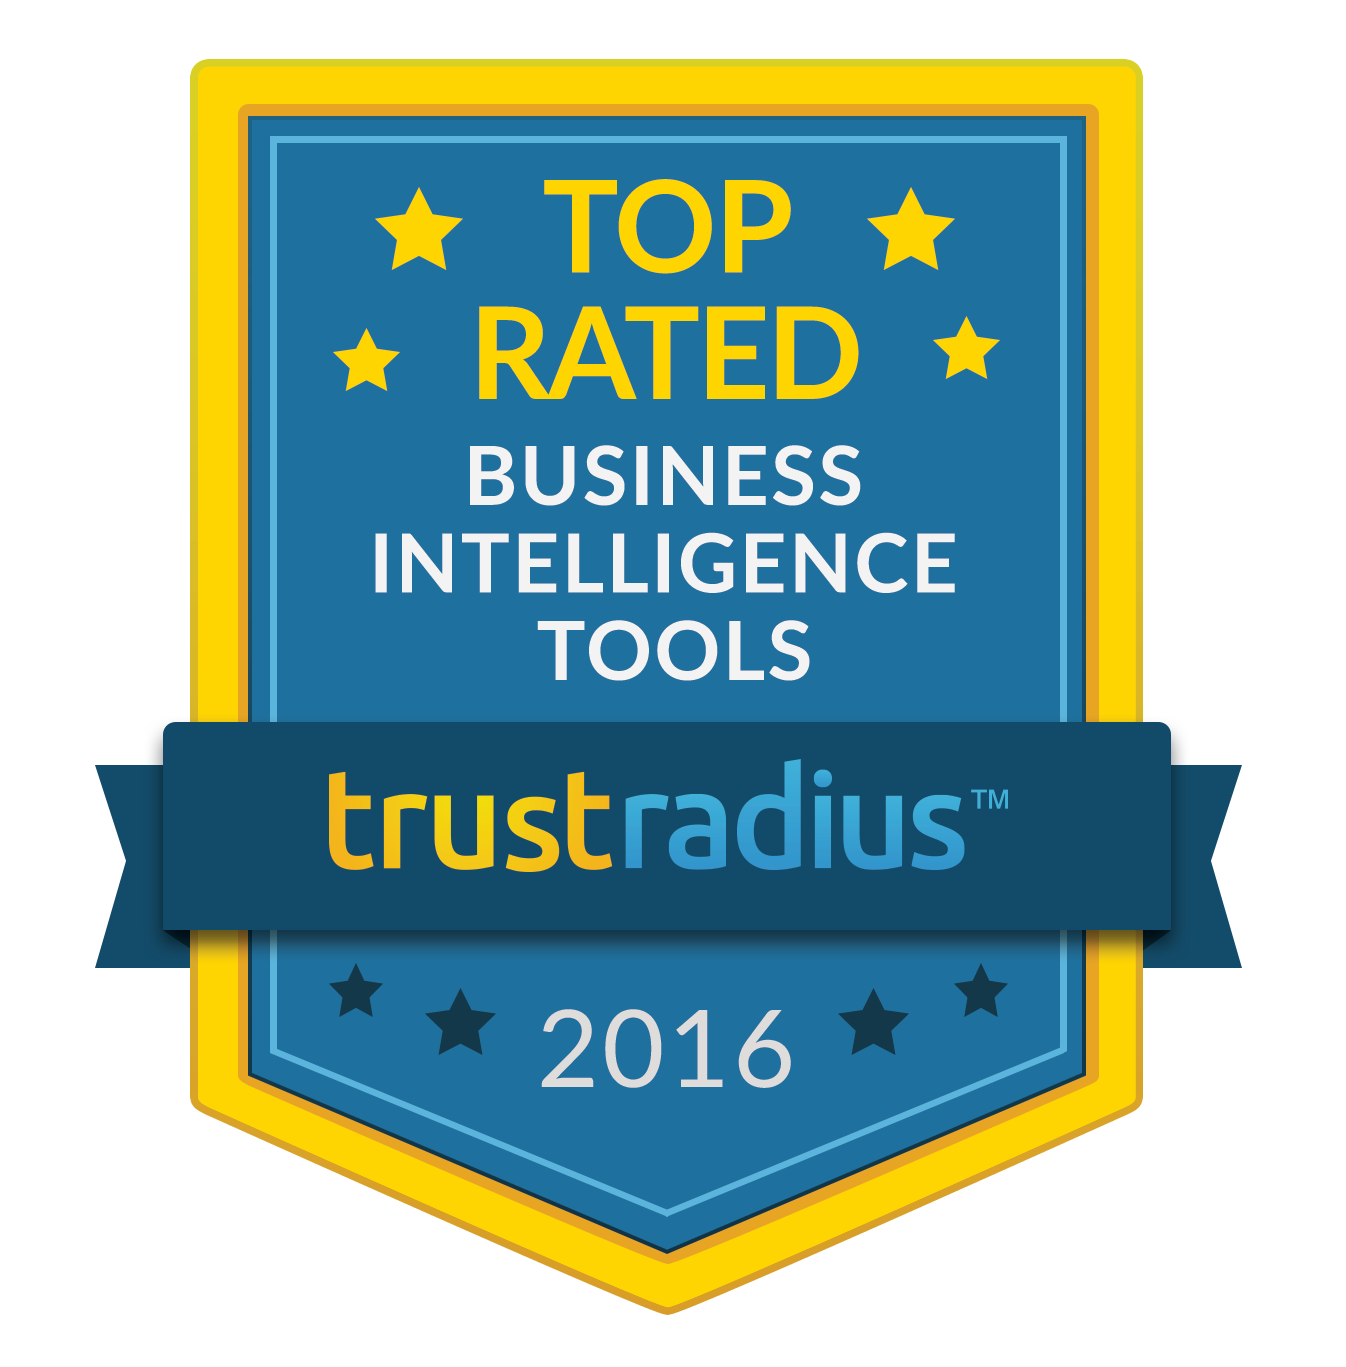 Top Rated Business Intelligence Tools 2016